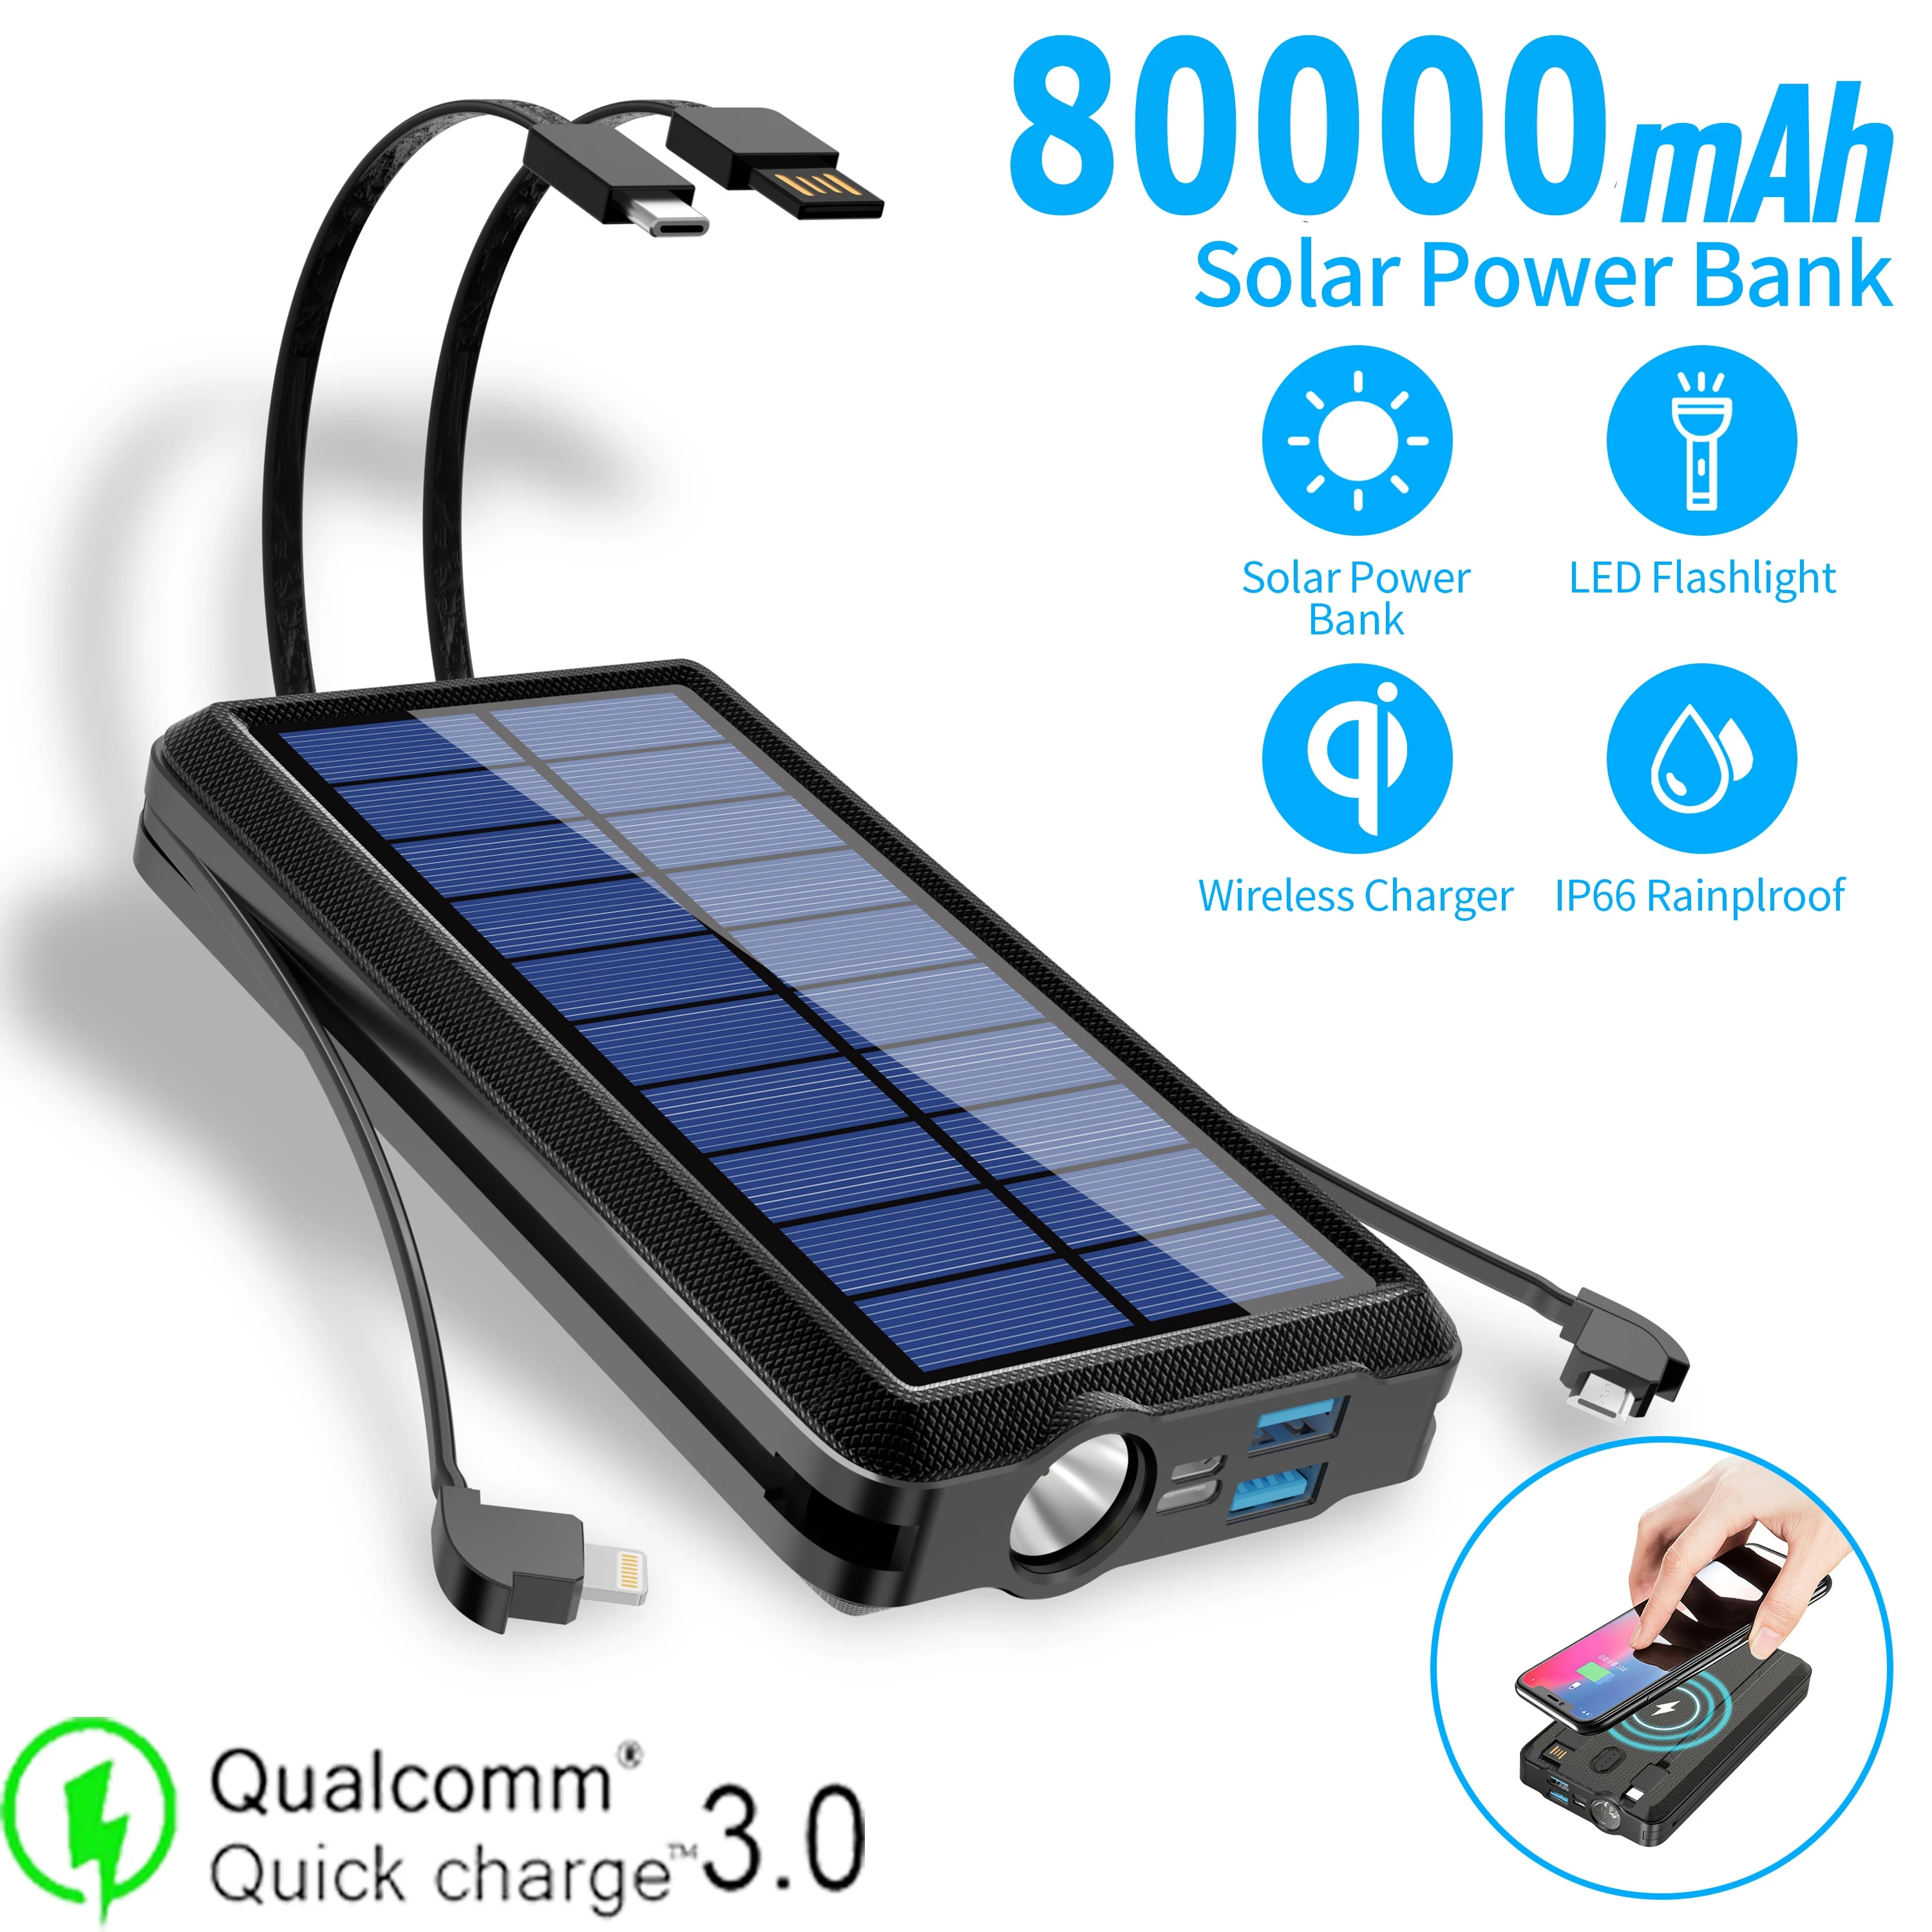 Portable 80000mAh Qi Wireless Charging Solar Batteery Panel Powerbank LED Emergency Fast External Battery For Samsung Iphone